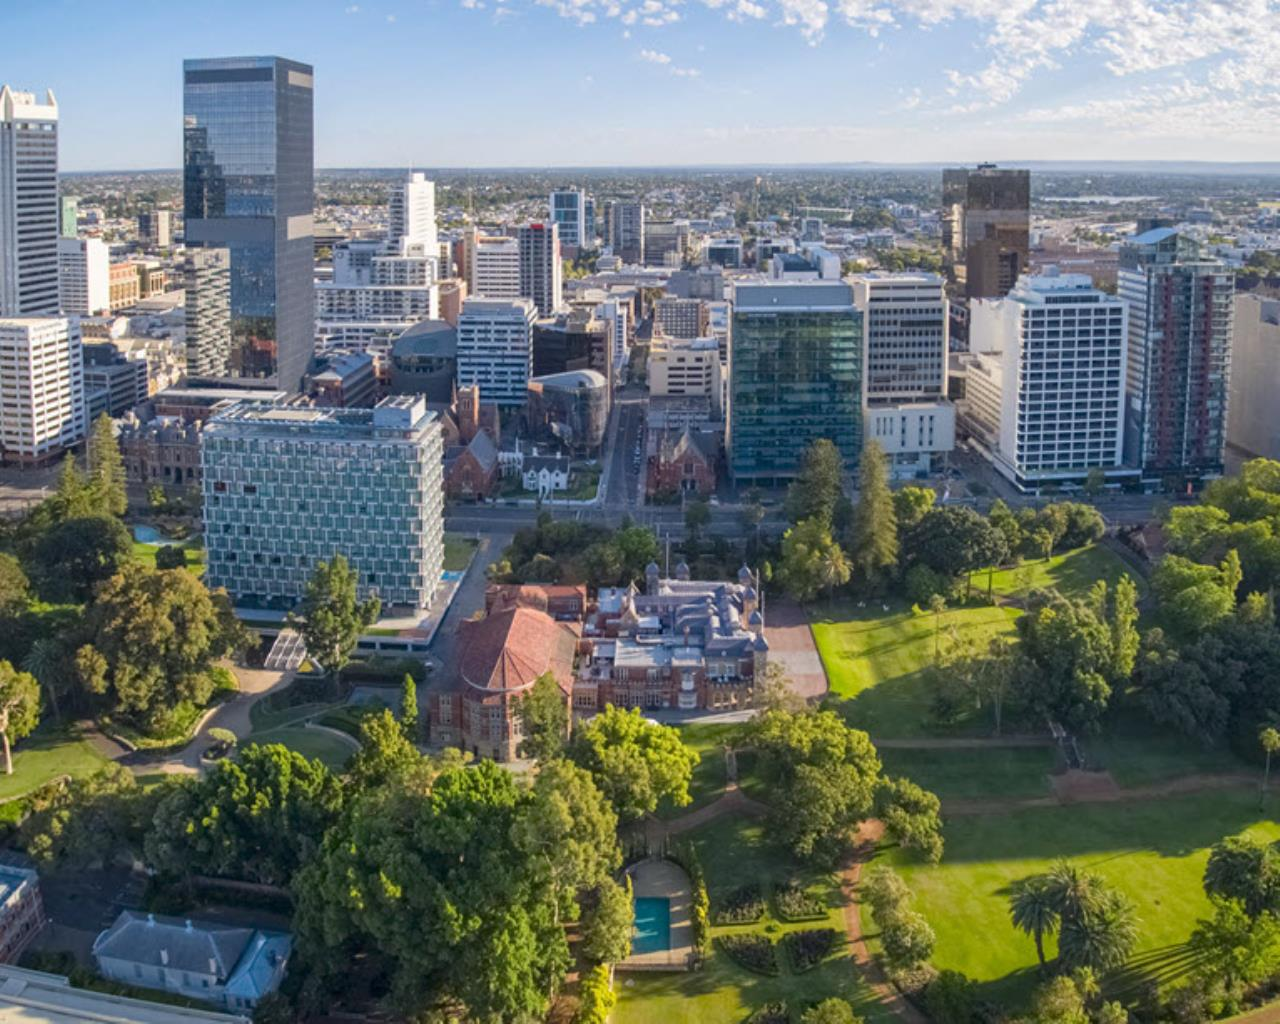 Perth city view from sky over government house